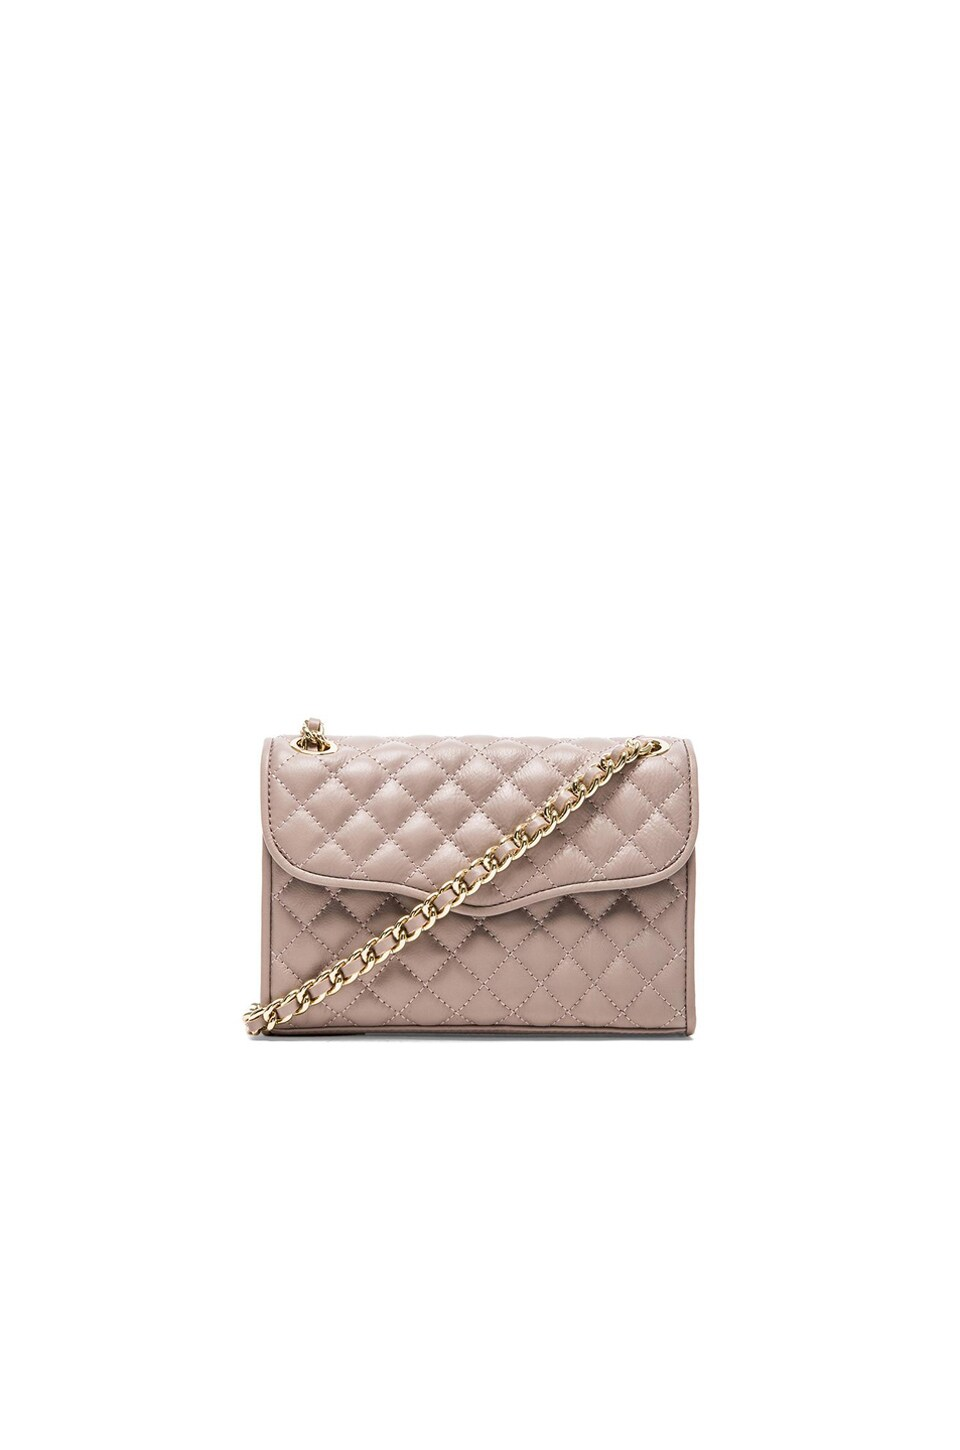 Rebecca Minkoff Quilted Mini Affair in Tortora